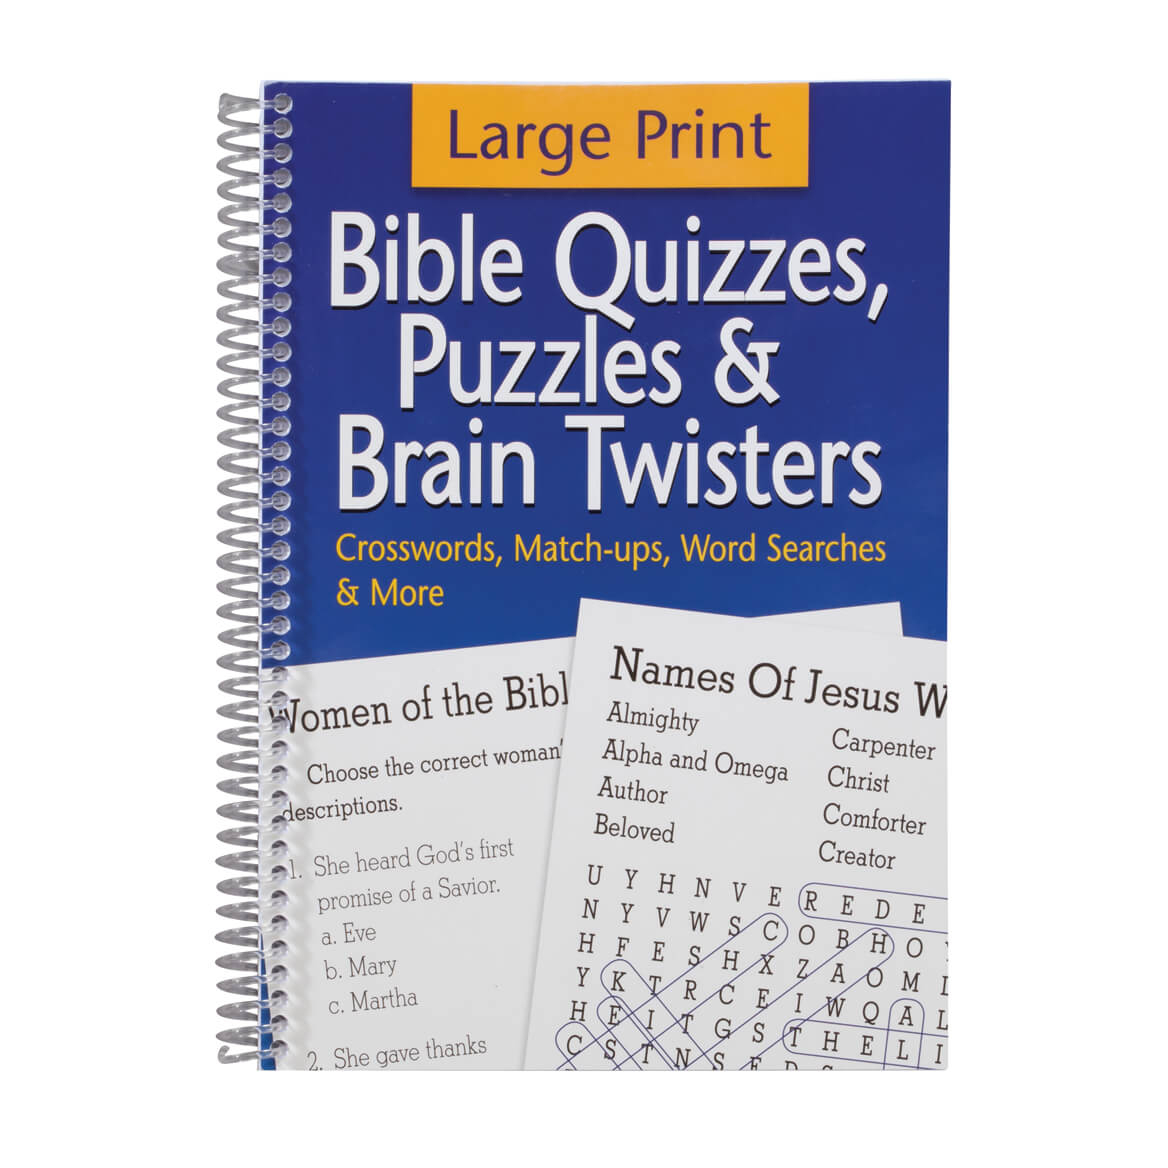 Large Print Bible Puzzle Book - Bible Puzzles - Walter Drake - Puzzle Print Reviews